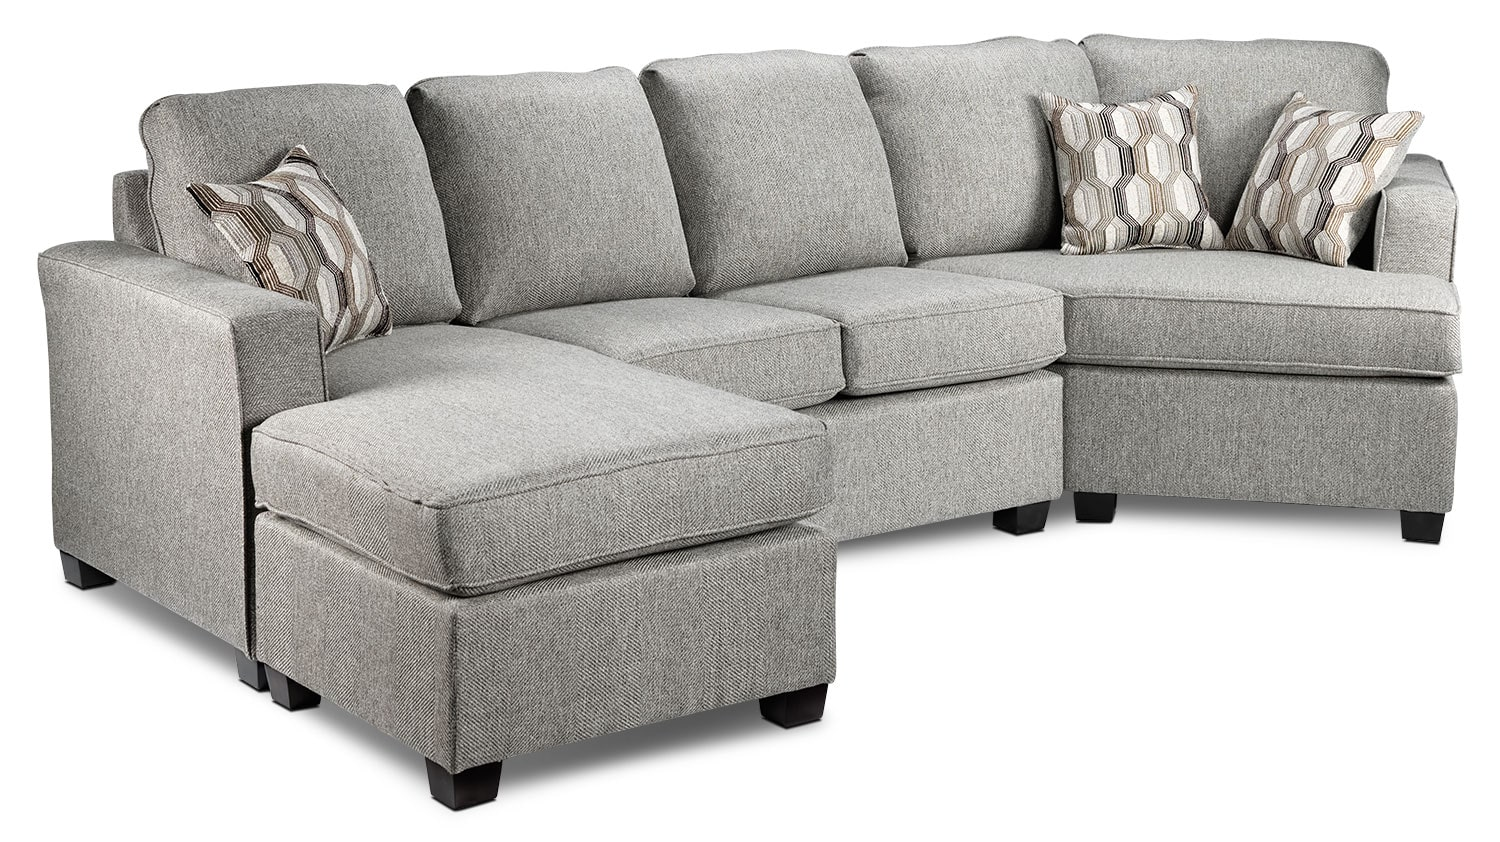 Living Room Furniture - Downtown 2-Piece Left-Facing Sectional - Grey